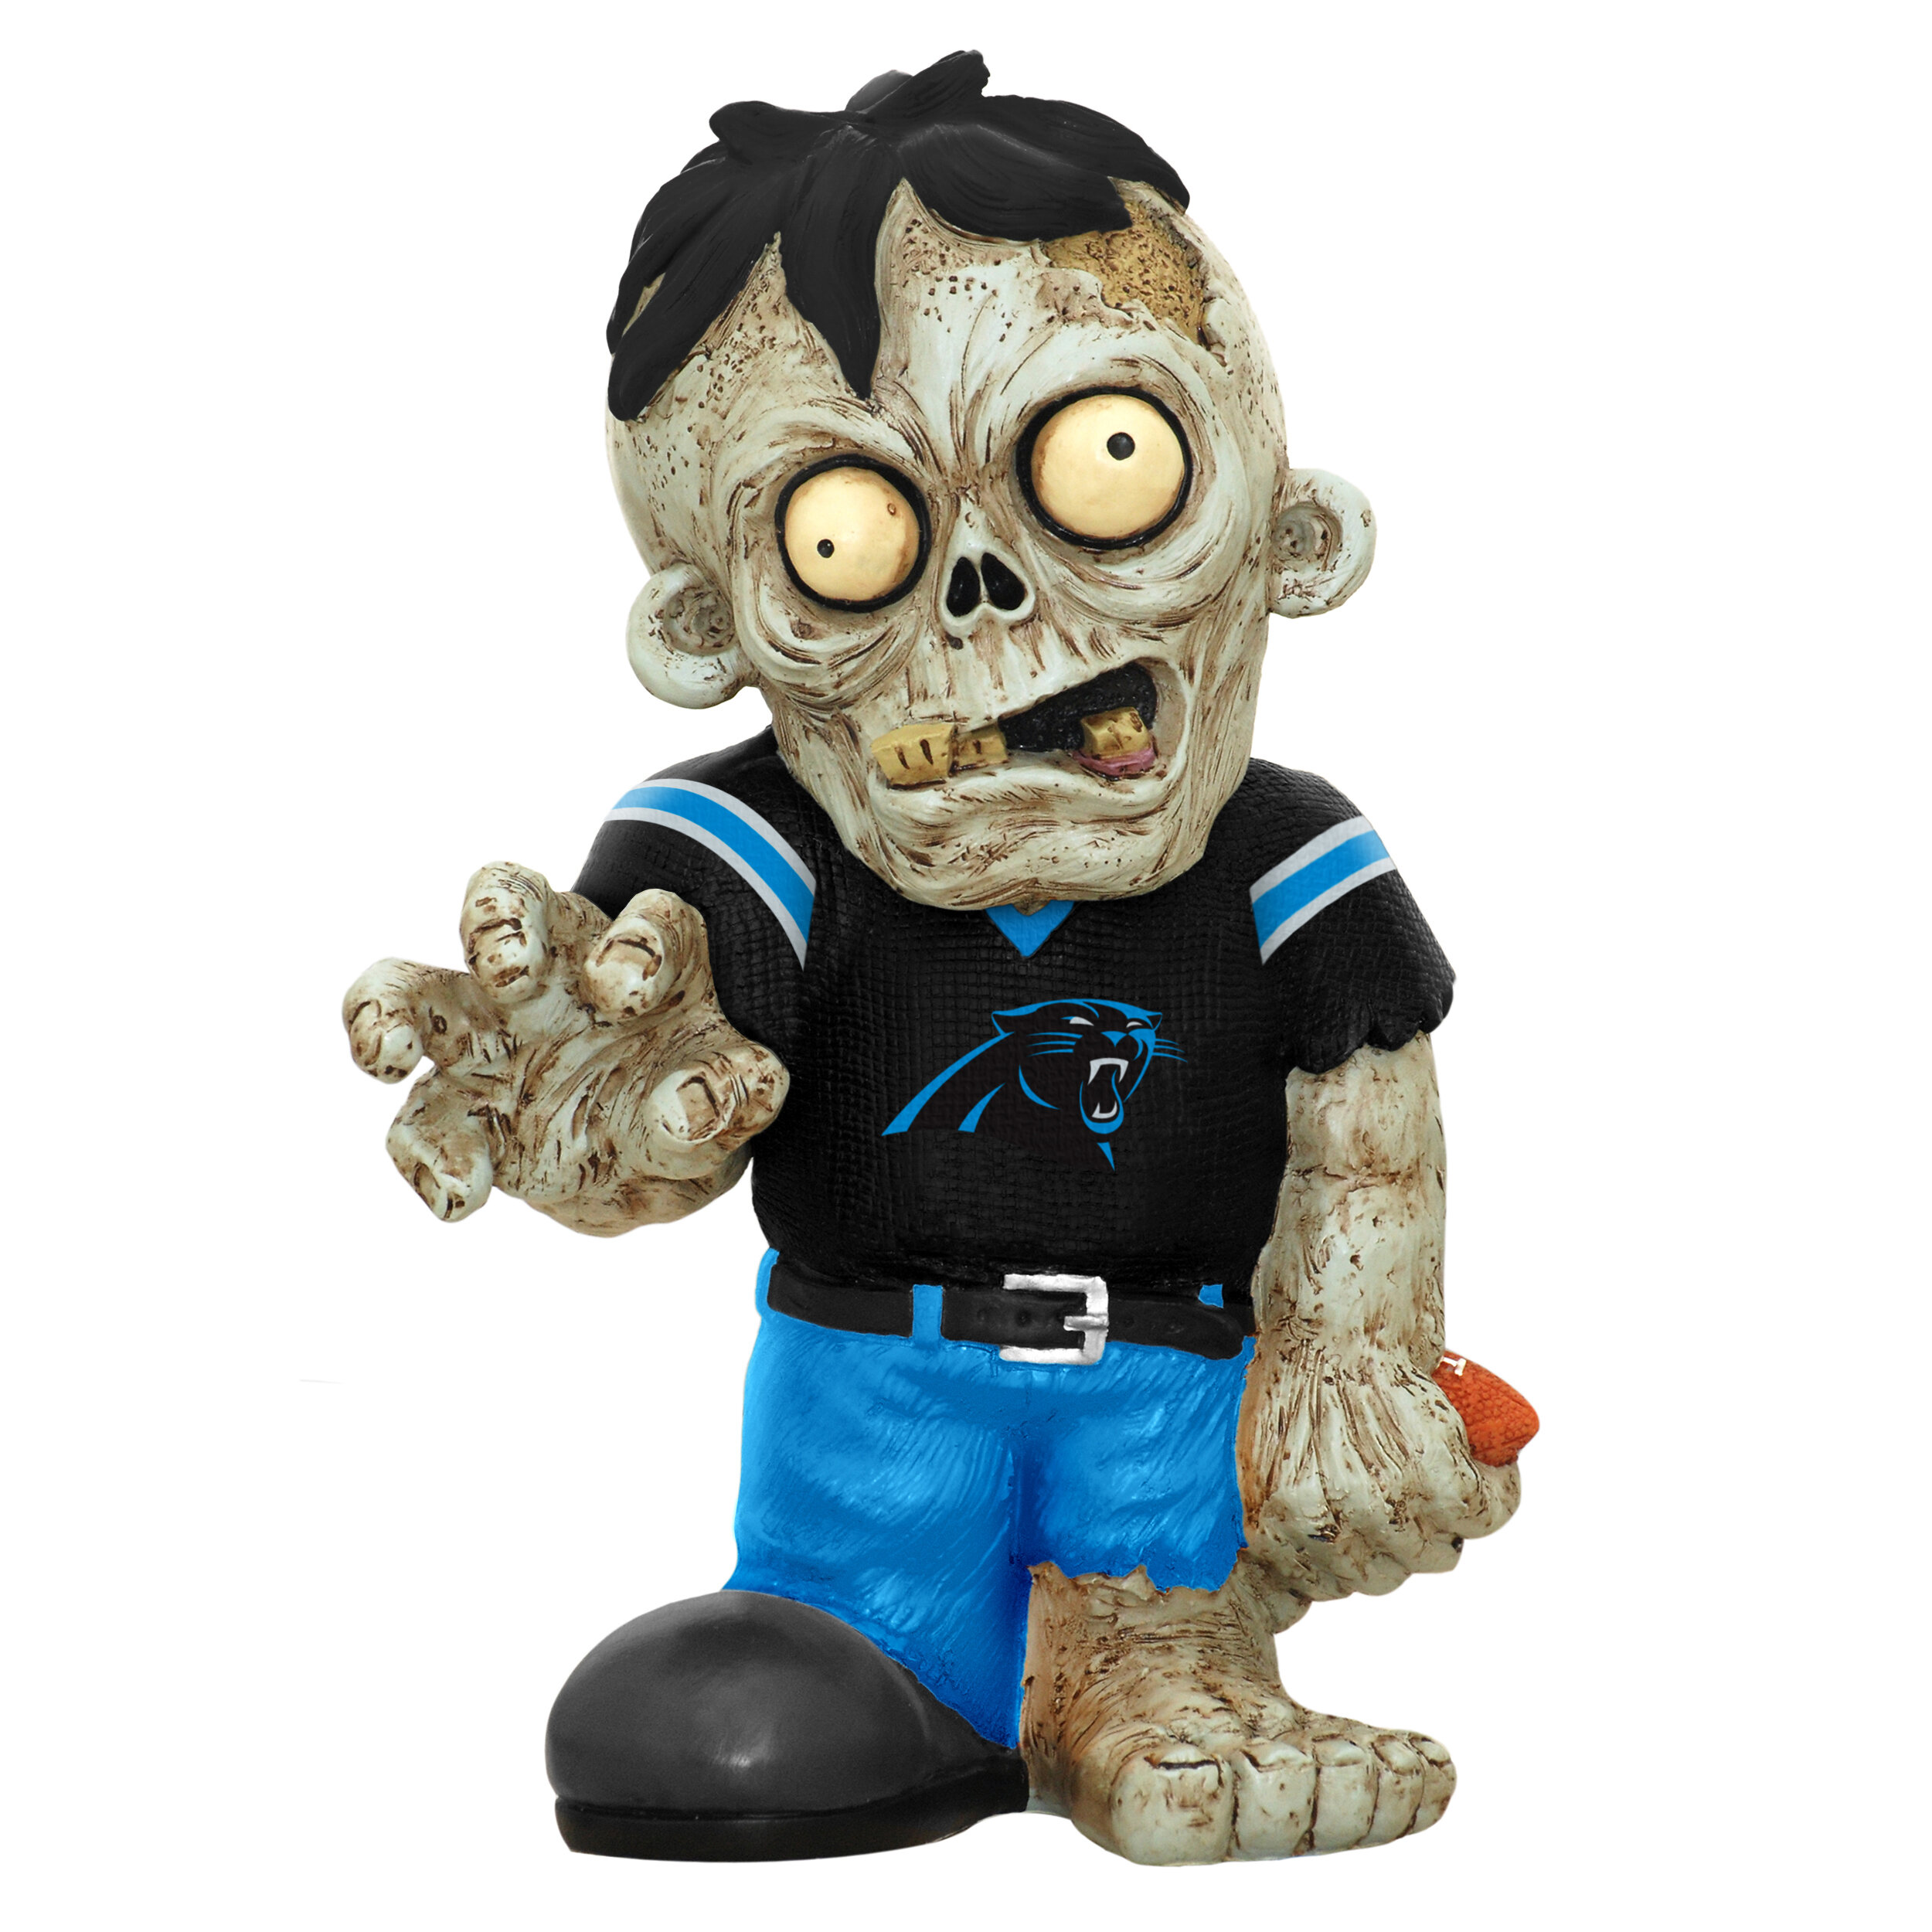 Forever Collectibles Nfl Zombie Lawn Art Figurine Reviews Wayfair